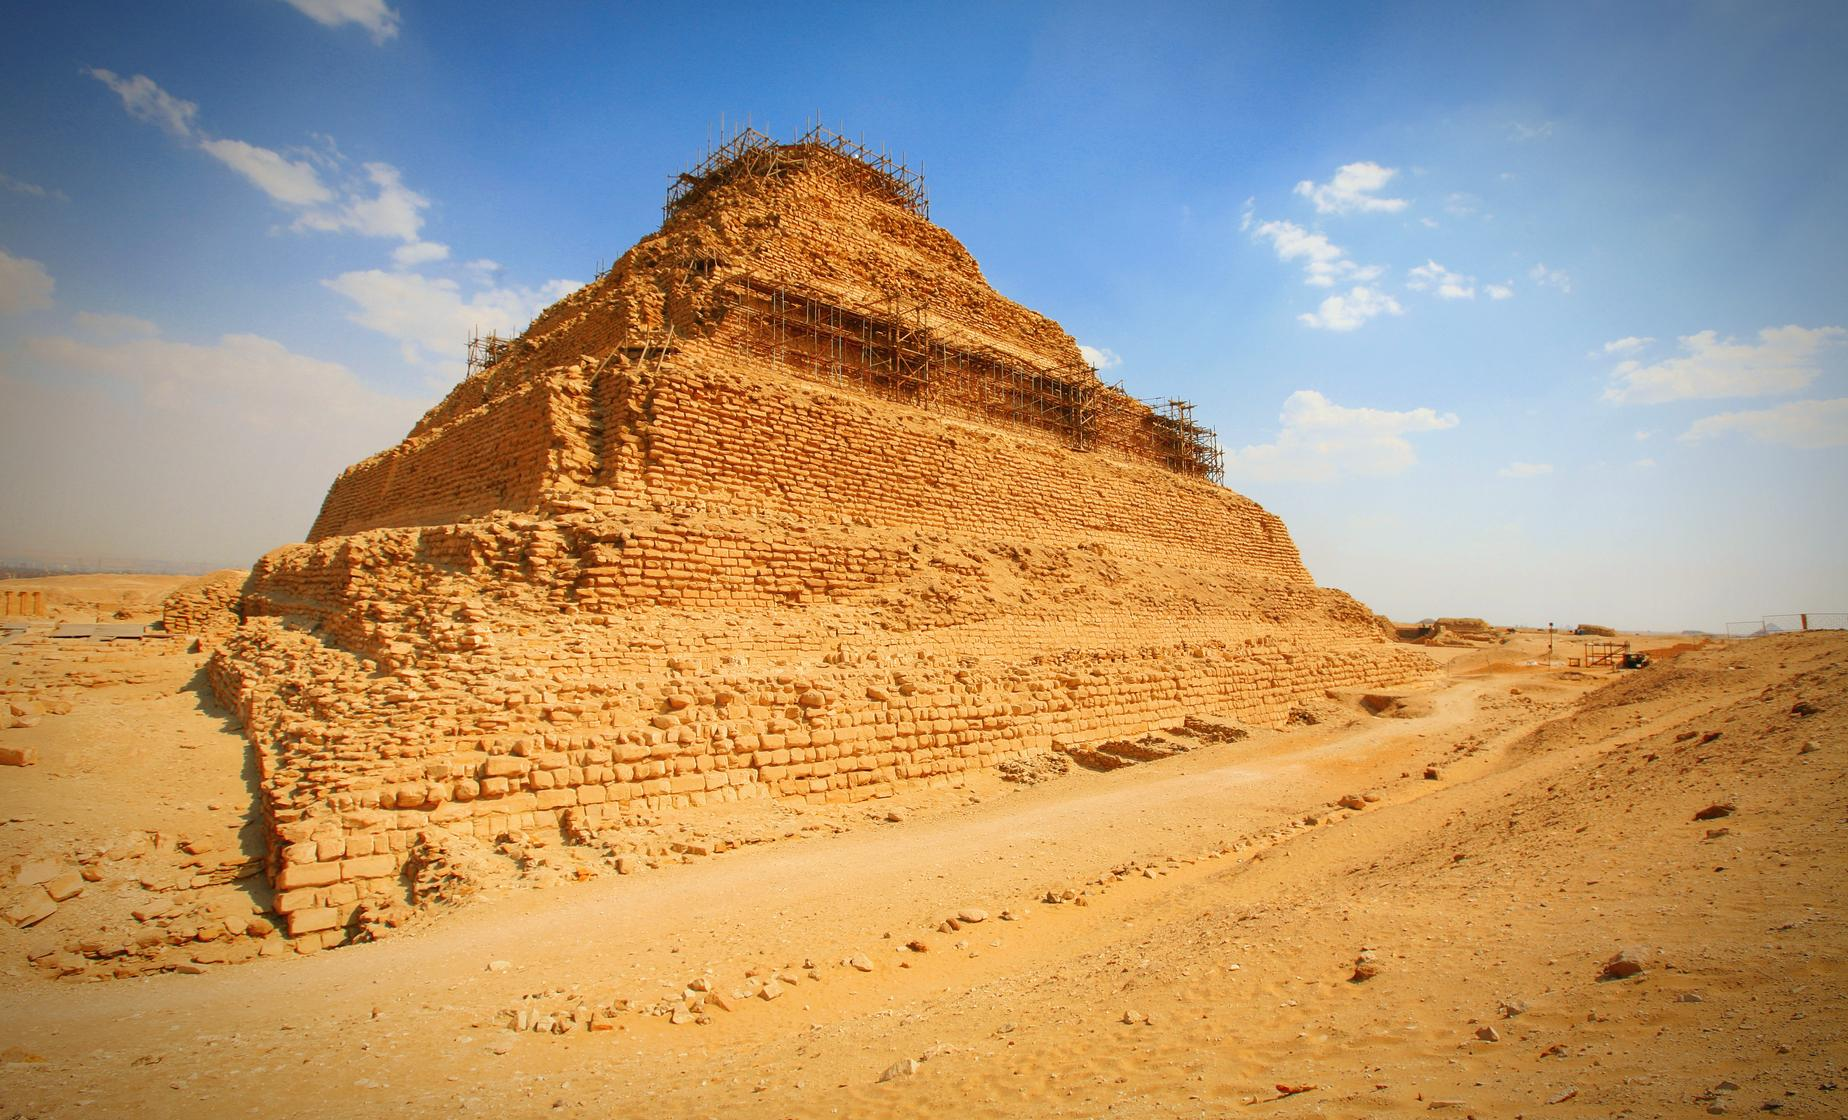 Private Memphis, Sakkara and Cairo Tour from Alexandria (King Djoserï's Pyramid)